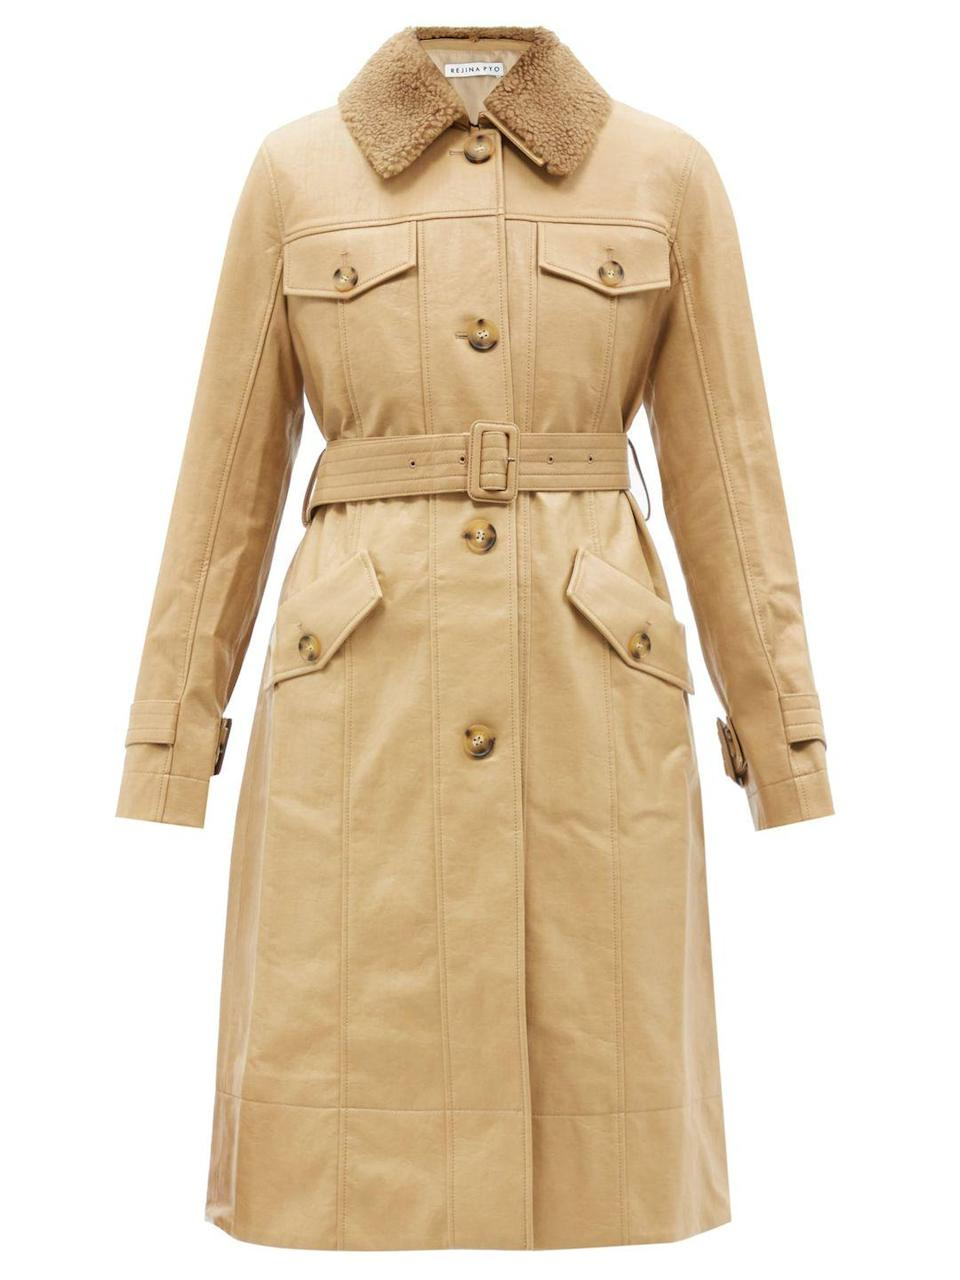 """<p><a class=""""link rapid-noclick-resp"""" href=""""https://www.matchesfashion.com/products/Rejina-Pyo-Hana-belted-faux-leather-coat-1432459"""" rel=""""nofollow noopener"""" target=""""_blank"""" data-ylk=""""slk:SHOP NOW"""">SHOP NOW</a></p><p>Fashion's obsession with leather is showing no signs of abating; so if you don't already have an A-line skirt or cropped trousers made of the stuff, you're missing a trick. Rejina Pyo's coat is proof that leather looks don't have to be dramatic or gothic, thanks to its 'Seventies-inspired belted shape, borg collar and tort buttons.</p><p>Hana Belted Faux-leather Coat, £795, Rejina Pyo</p>"""